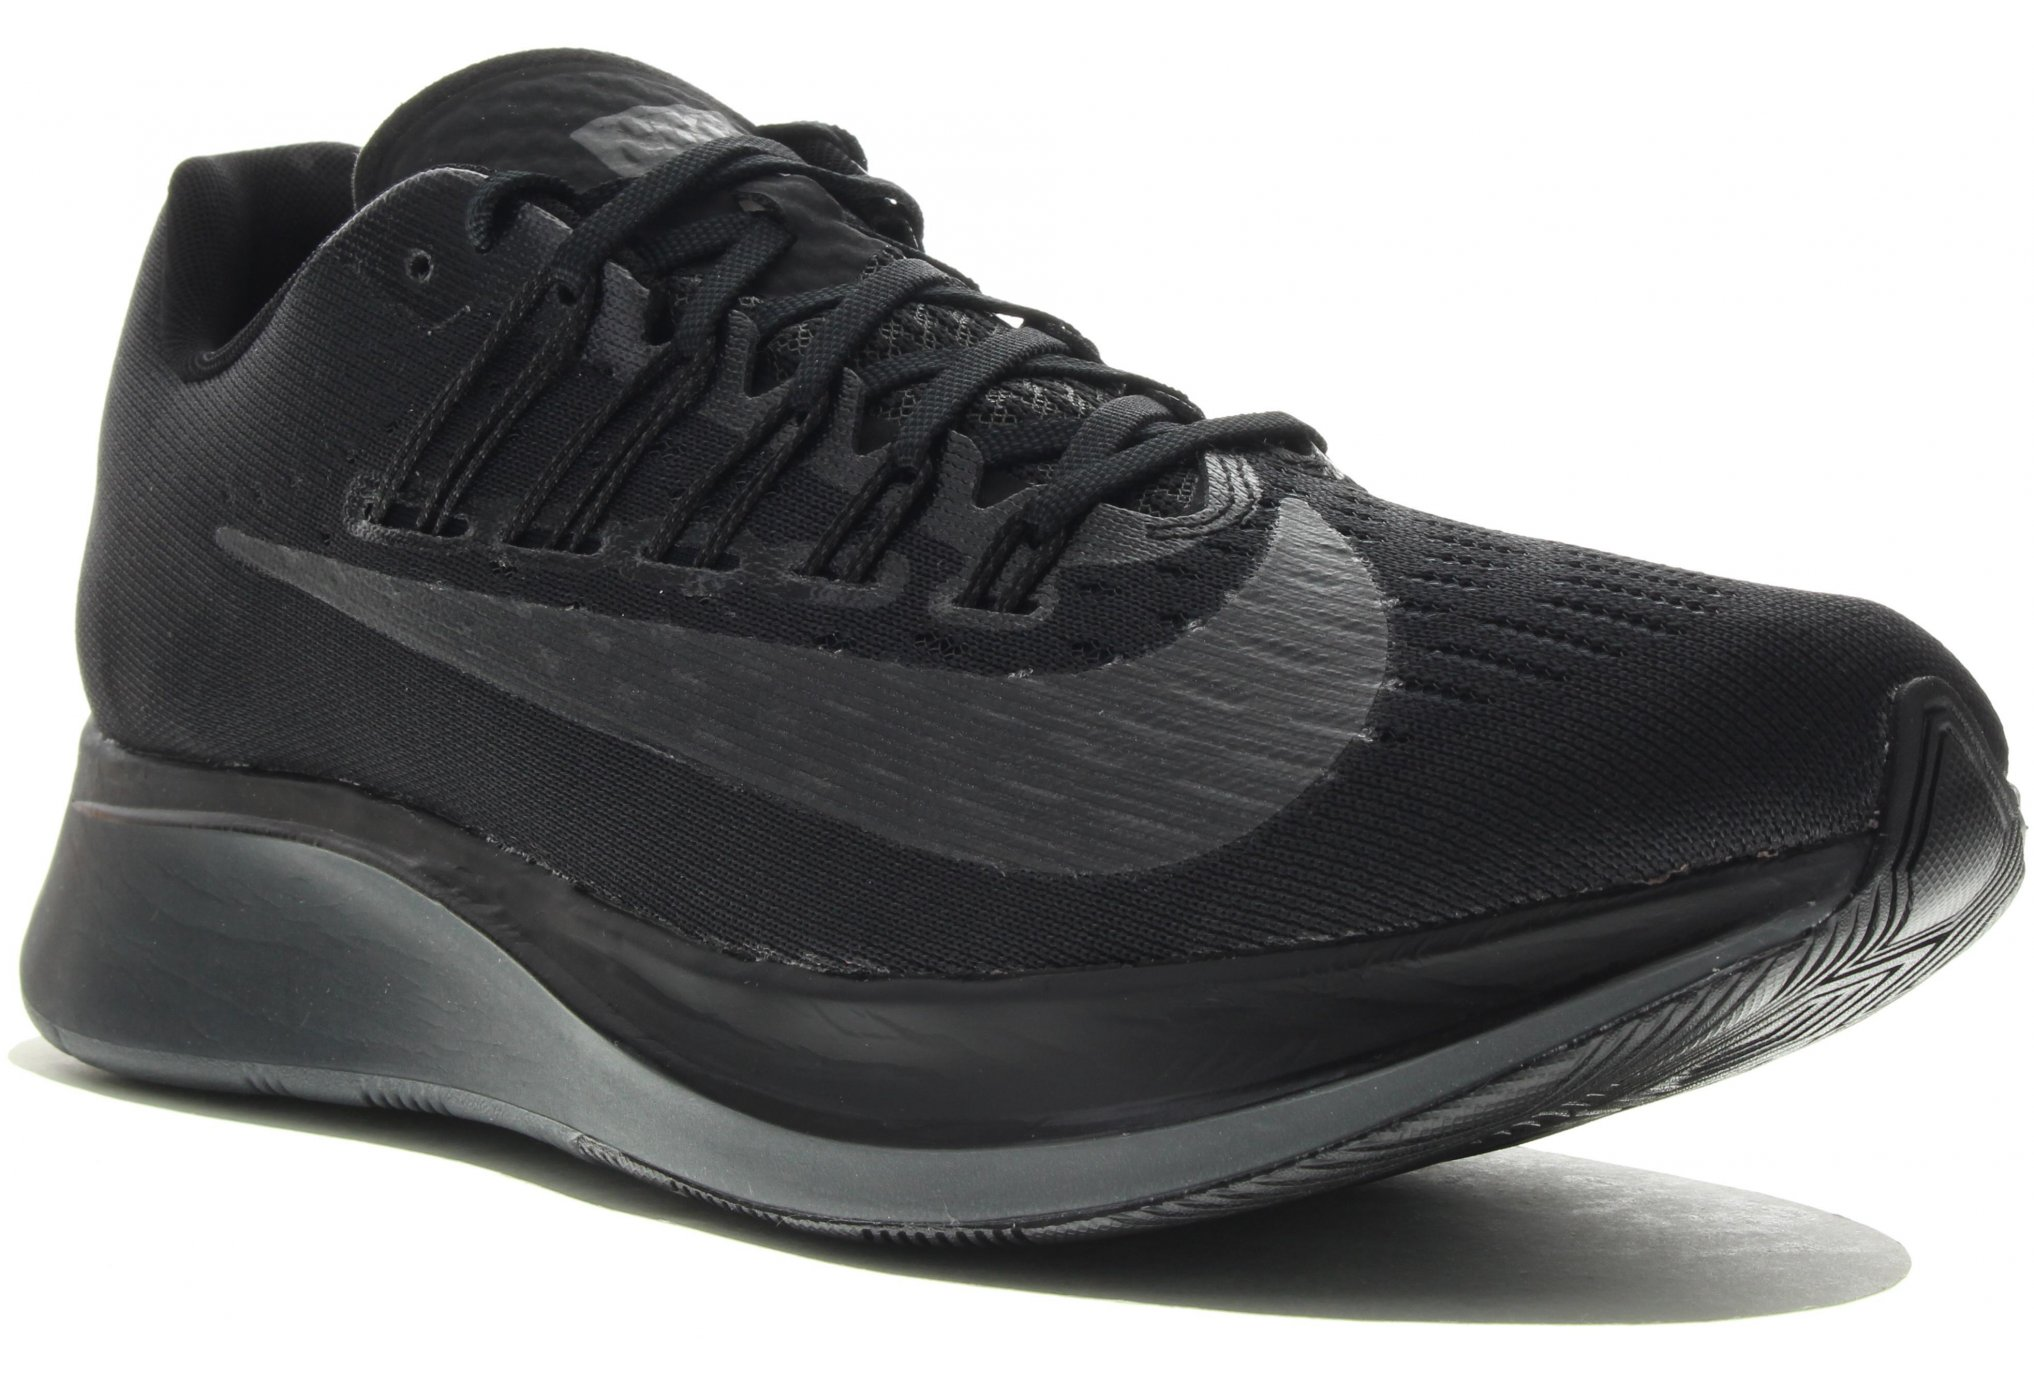 nike-zoom-fly-m-chaussures-homme-206363-1-fz (1)